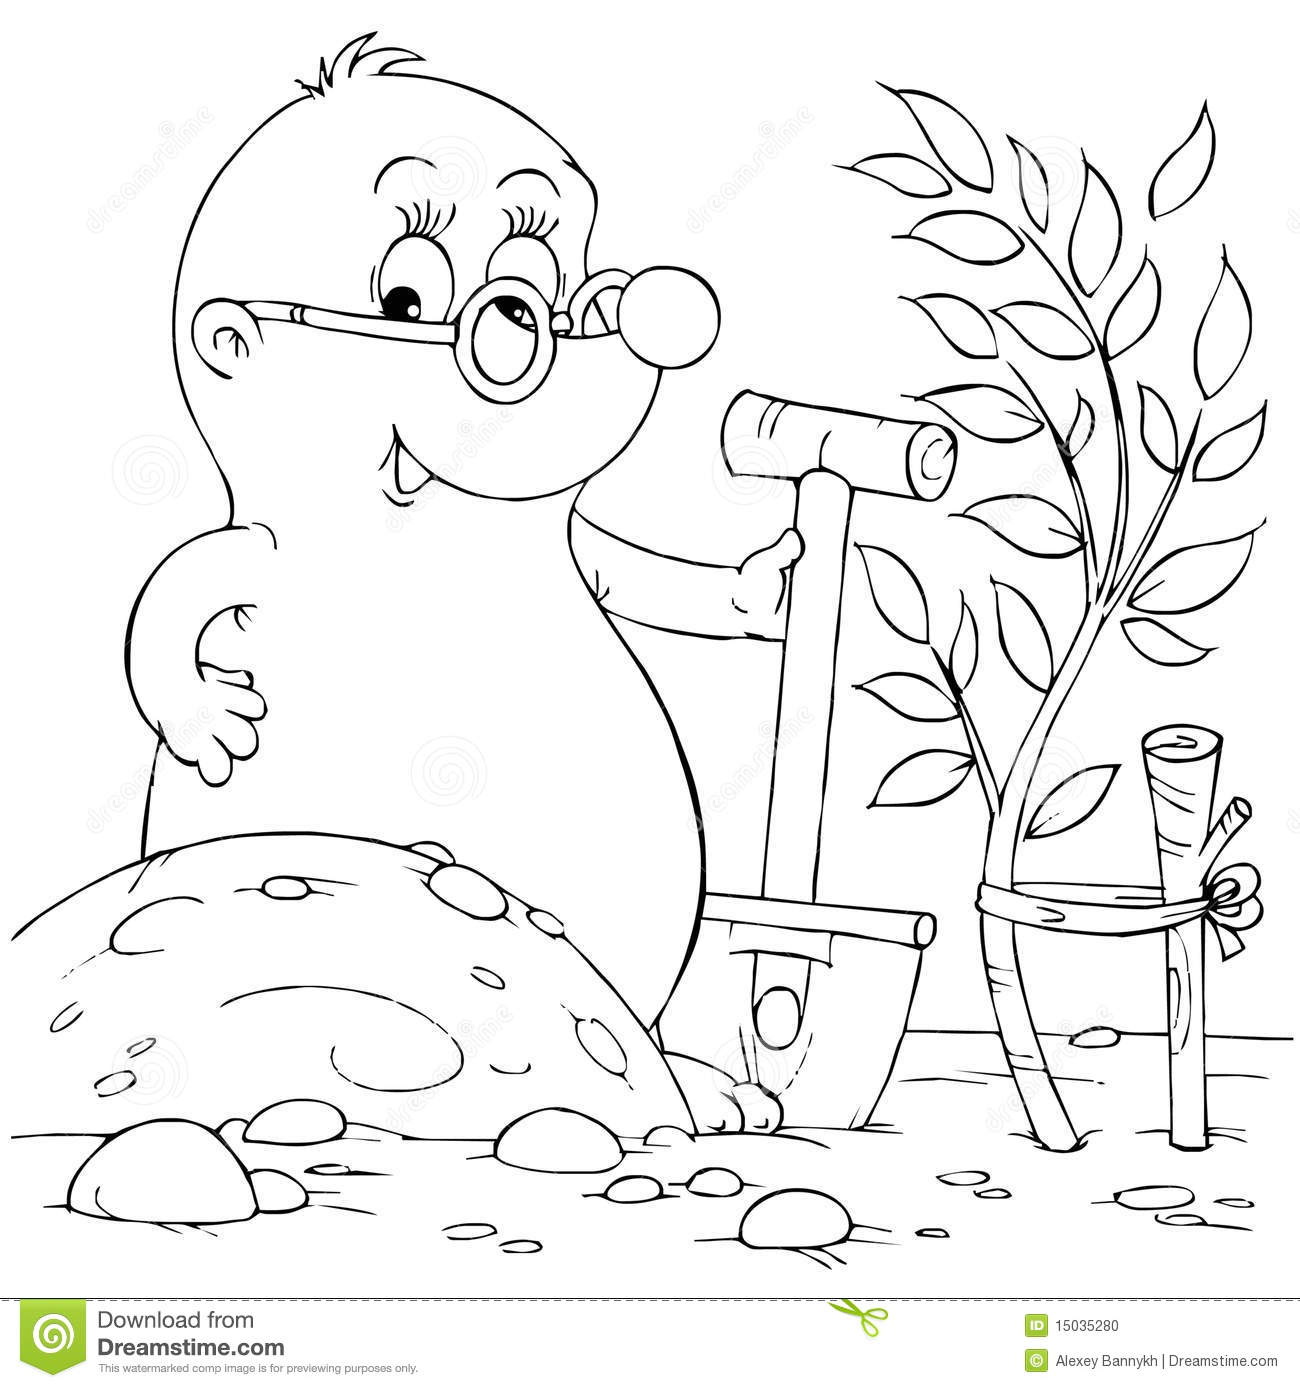 naked mole rat coloring pages - photo#16